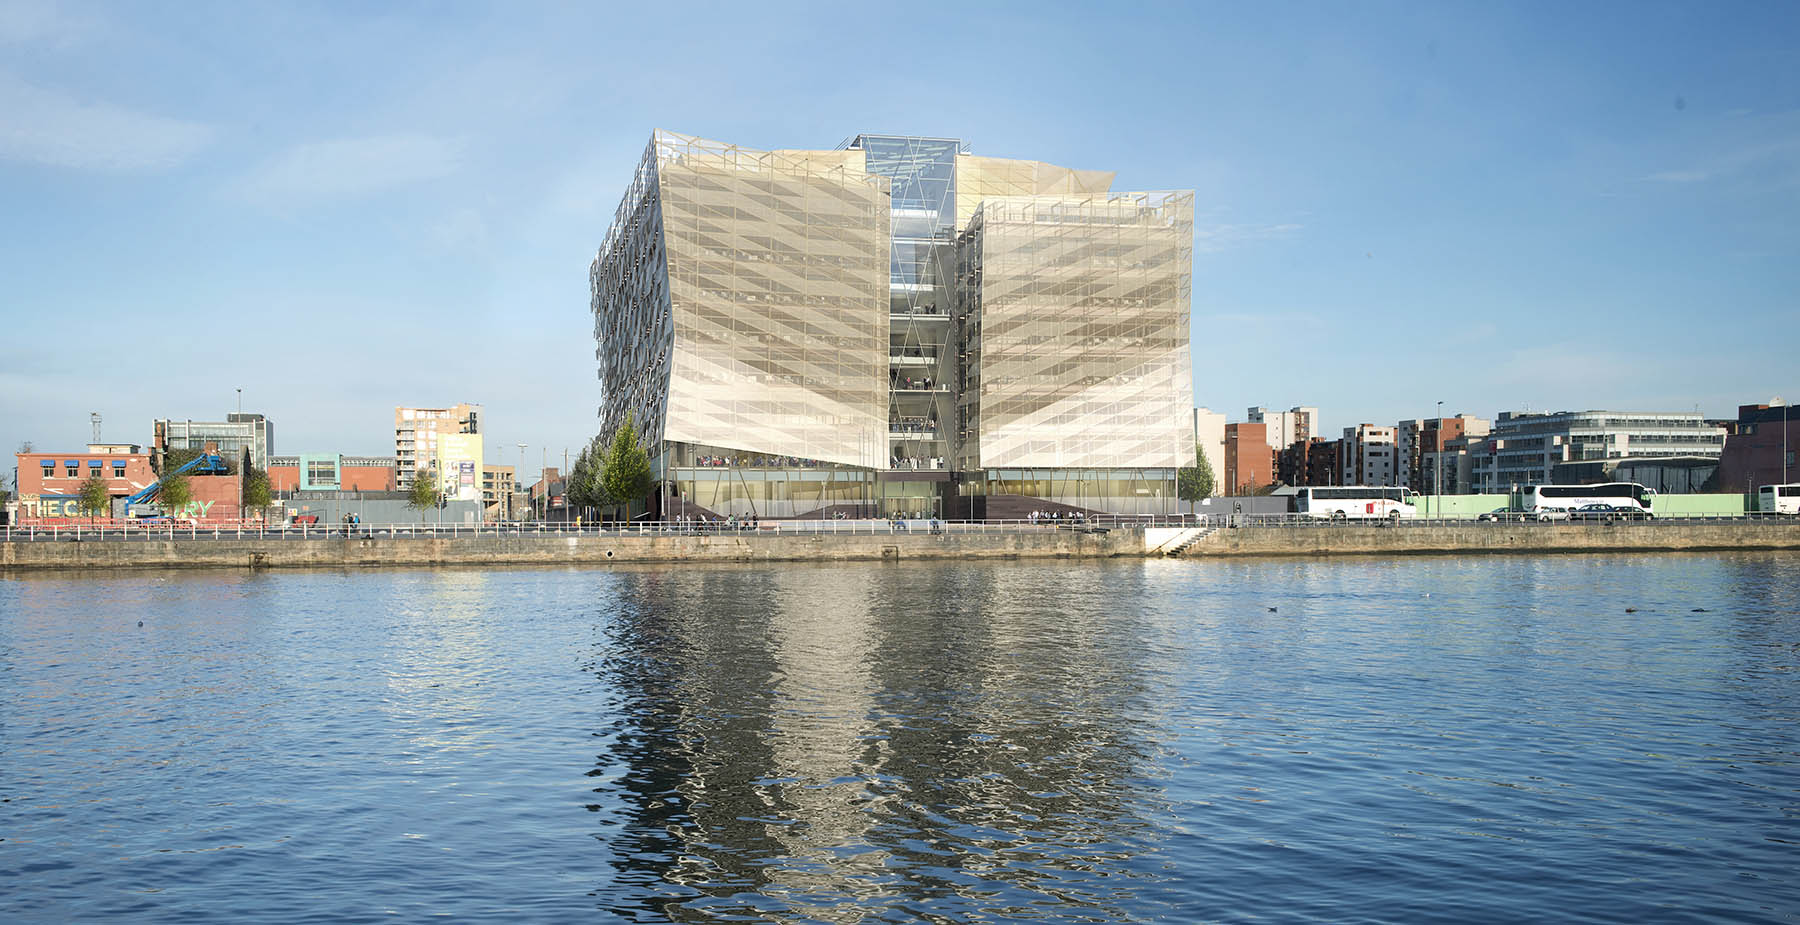 CENTRAL BANK OF IRELAND 1